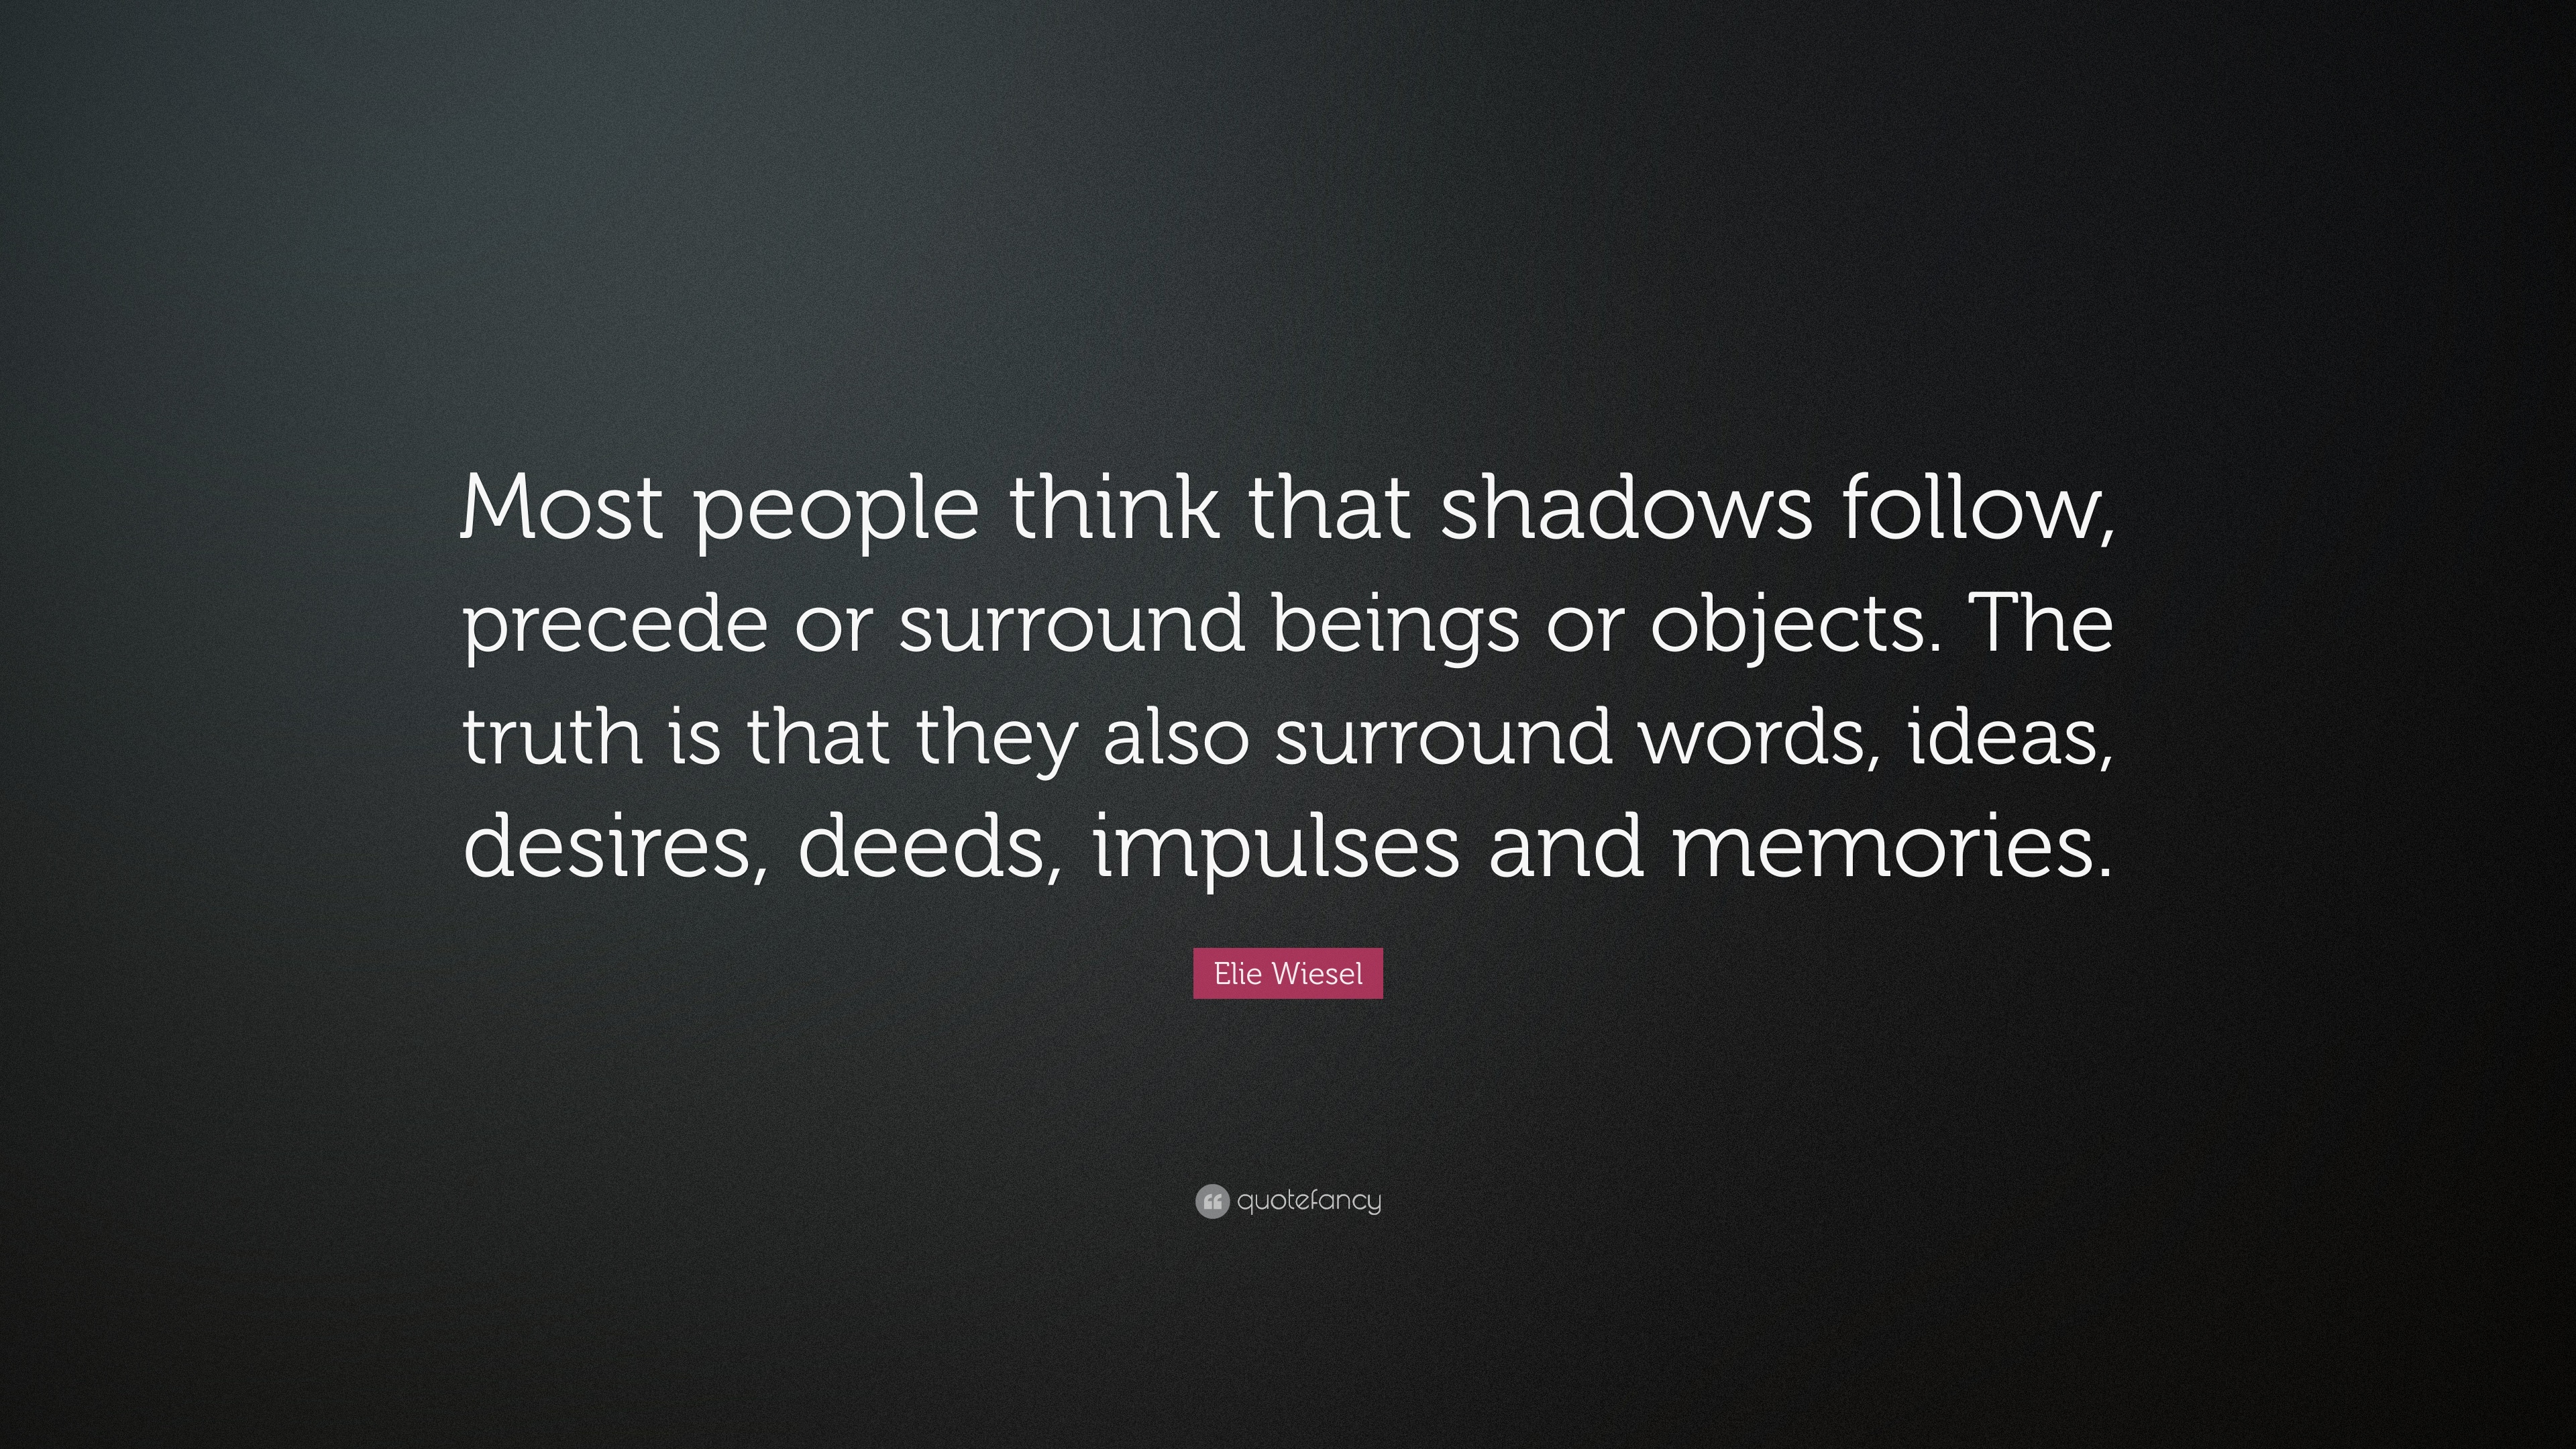 Elie Wiesel Quote: U201cMost People Think That Shadows Follow, Precede Or  Surround Beings